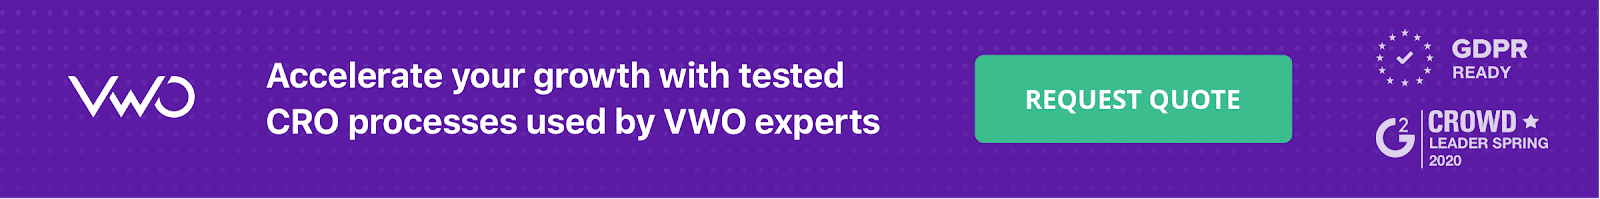 Accelerate Your Growth With VWO